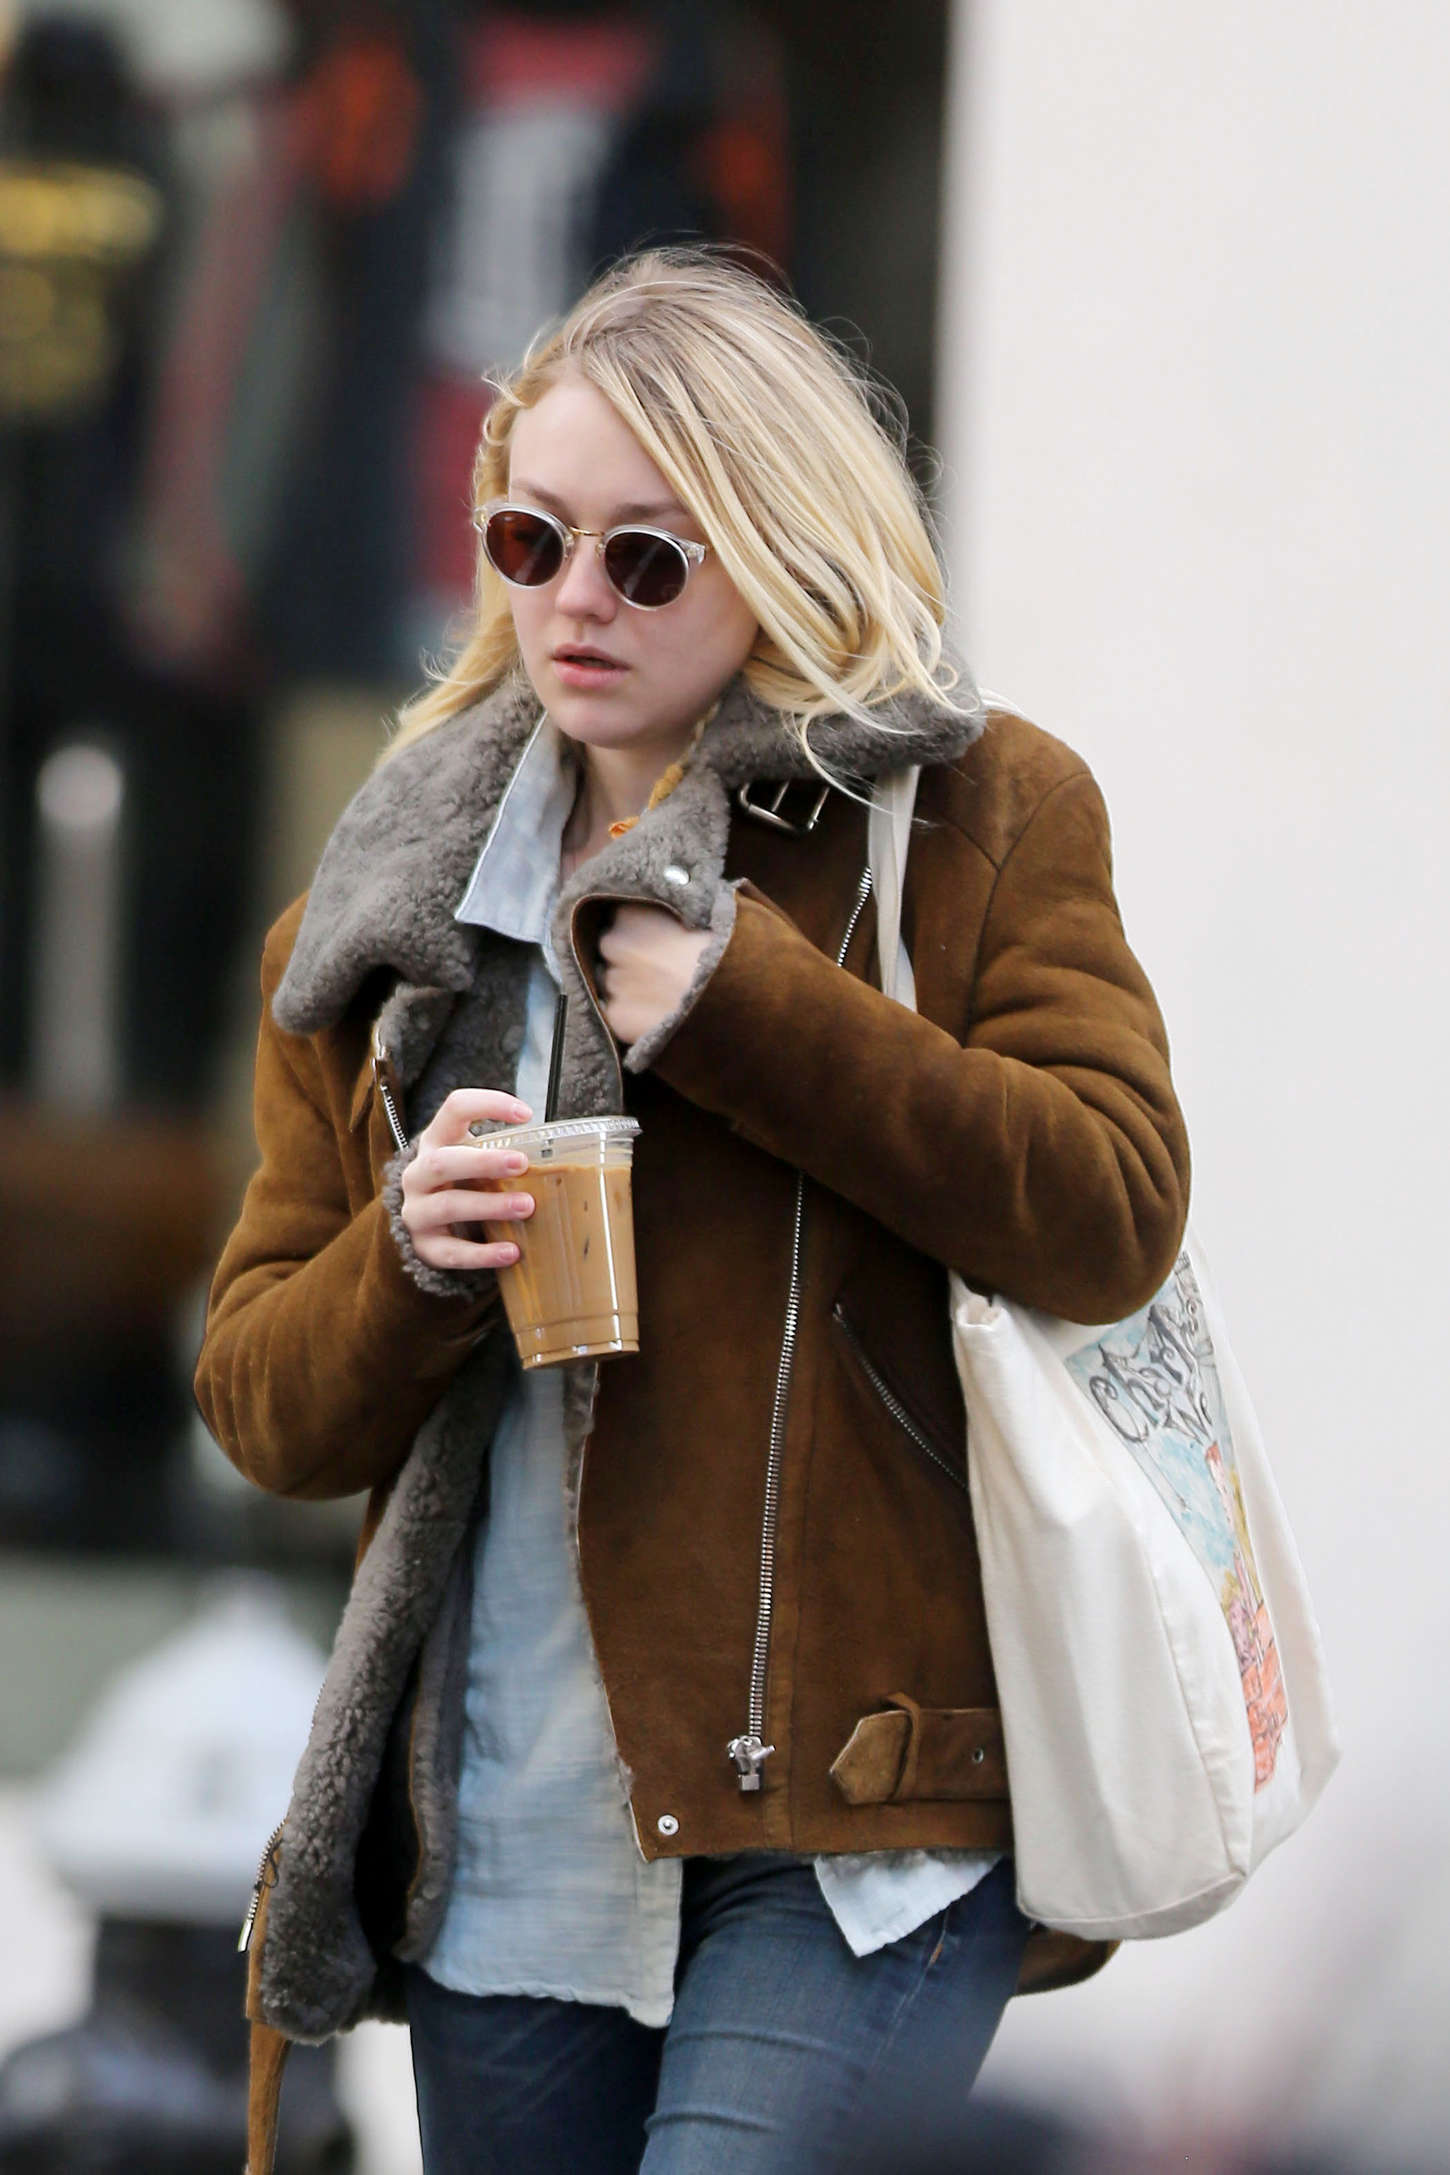 Dakota Fanning in Tight jeans out in NYC